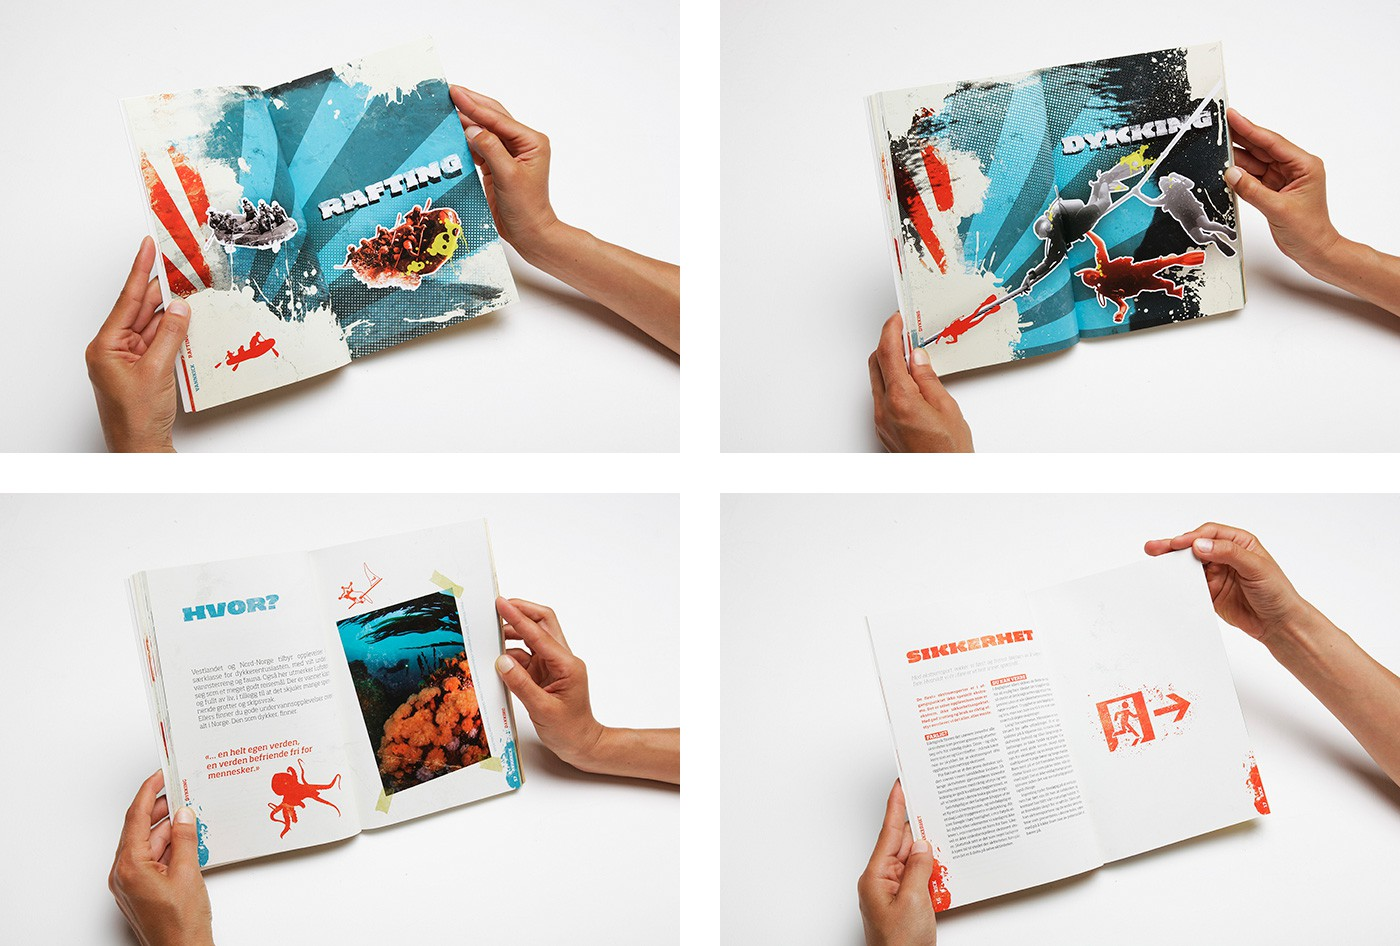 KICK Adrenalinguiden book design by upstruct